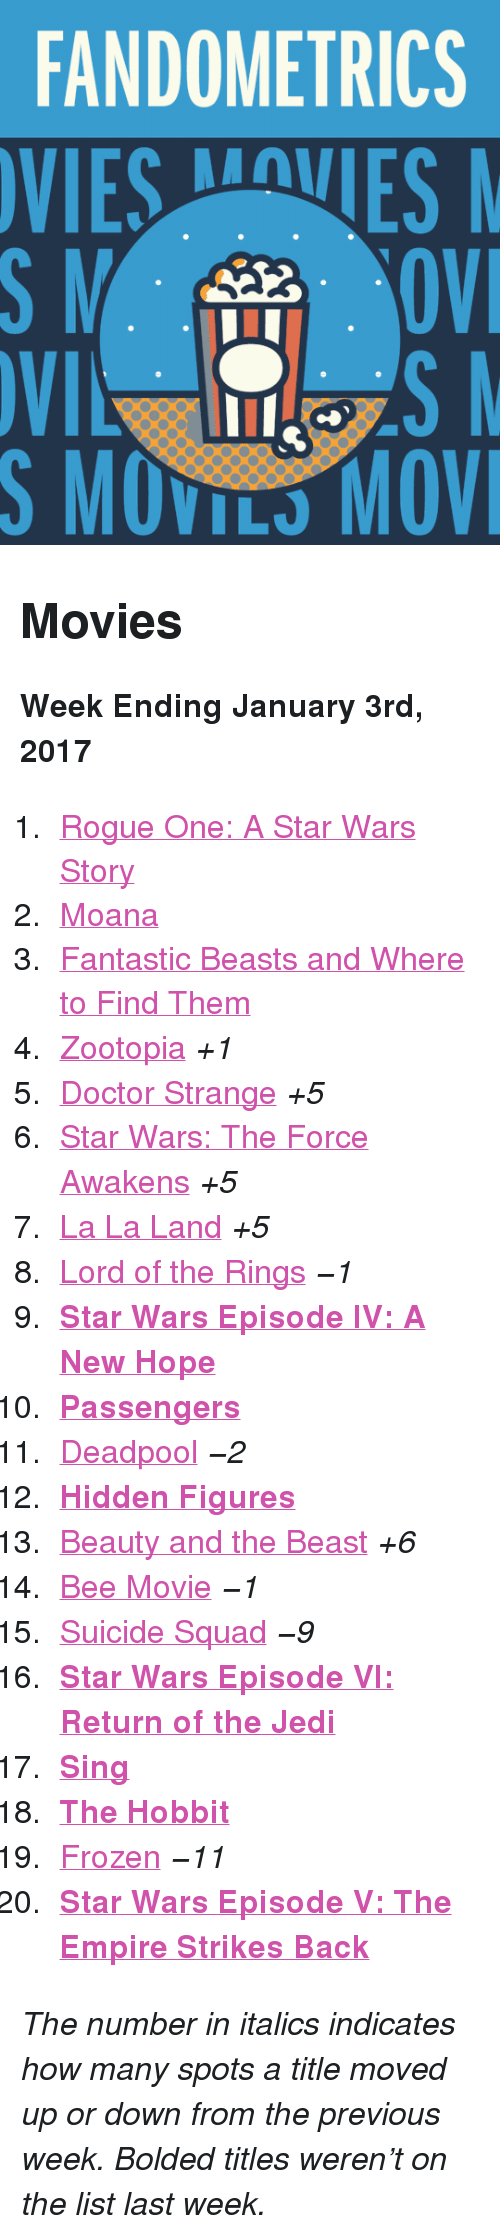 """The Empire Strikes Back: FANDOMETRICS  VIESVES  S MOVILS MOV <h2>Movies</h2><p><b>Week Ending January 3rd, 2017</b></p><ol><li><a href=""""http://www.tumblr.com/search/rogue%20one"""">Rogue One: A Star Wars Story</a></li>  <li><a href=""""http://www.tumblr.com/search/moana"""">Moana</a></li>  <li><a href=""""http://www.tumblr.com/search/fantastic%20beasts%20and%20where%20to%20find%20them"""">Fantastic Beasts and Where to Find Them</a></li>  <li><a href=""""http://www.tumblr.com/search/zootopia"""">Zootopia</a><i>+1</i></li>  <li><a href=""""http://www.tumblr.com/search/doctor%20strange"""">Doctor Strange</a><i>+5</i></li>  <li><a href=""""http://www.tumblr.com/search/the%20force%20awakens"""">Star Wars: The Force Awakens</a><i>+5</i></li>  <li><a href=""""http://www.tumblr.com/search/la%20la%20land"""">La La Land</a><i>+5</i></li>  <li><a href=""""http://www.tumblr.com/search/lotr"""">Lord of the Rings</a><i>−1</i></li>  <li><a href=""""http://www.tumblr.com/search/a%20new%20hope""""><b>Star Wars Episode IV: A New Hope</b></a></li>  <li><a href=""""http://www.tumblr.com/search/passengers""""><b>Passengers</b></a></li>  <li><a href=""""http://www.tumblr.com/search/deadpool"""">Deadpool</a><i>−2</i></li>  <li><a href=""""http://www.tumblr.com/search/hidden%20figures""""><b>Hidden Figures</b></a></li>  <li><a href=""""http://www.tumblr.com/search/beauty%20and%20the%20beast"""">Beauty and the Beast</a><i>+6</i></li>  <li><a href=""""http://www.tumblr.com/search/bee%20movie"""">Bee Movie</a><i>−1</i></li>  <li><a href=""""http://www.tumblr.com/search/suicide%20squad"""">Suicide Squad</a><i>−9</i></li>  <li><a href=""""http://www.tumblr.com/search/return%20of%20the%20jedi""""><b>Star Wars Episode VI: Return of the Jedi</b></a></li>  <li><a href=""""http://www.tumblr.com/search/sing%20movie""""><b>Sing</b></a></li>  <li><a href=""""http://www.tumblr.com/search/the%20hobbit""""><b>The Hobbit</b></a></li>  <li><a href=""""http://www.tumblr.com/search/frozen"""">Frozen</a><i>−11</i></li>  <li><a href=""""http://www.tumblr.com/search/the%20empire%20strikes%20back""""><b>Star Wars Episode V: The"""